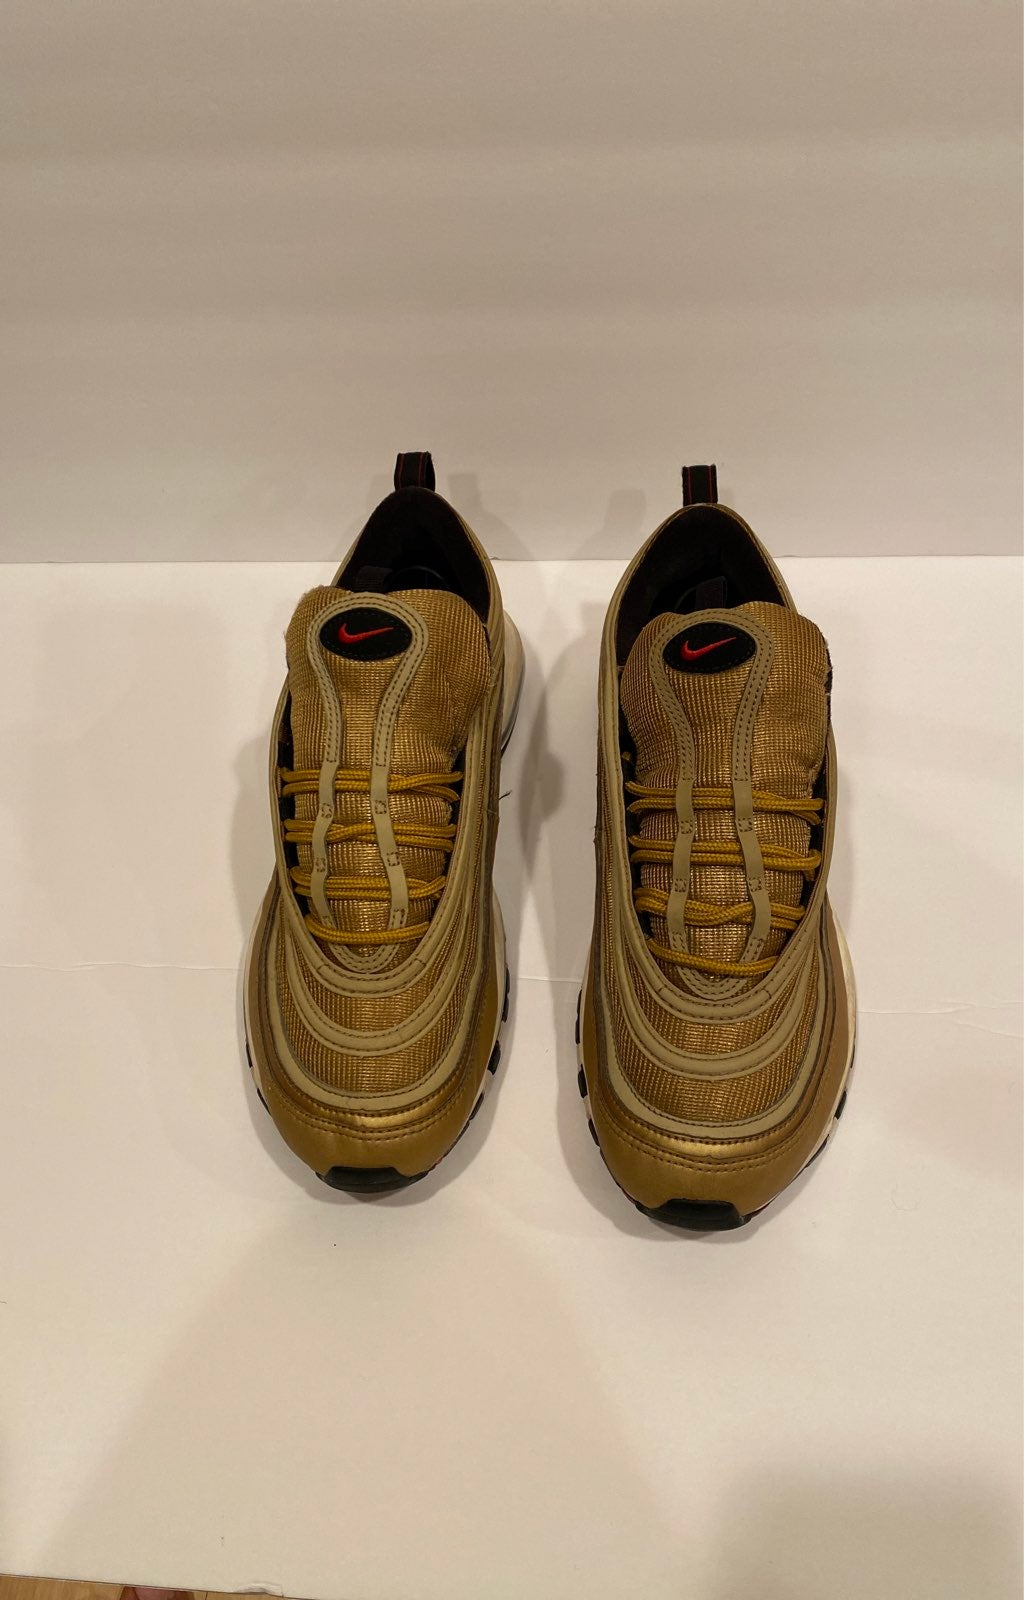 Mens Nike Air Max 97 Gold Size 10.5